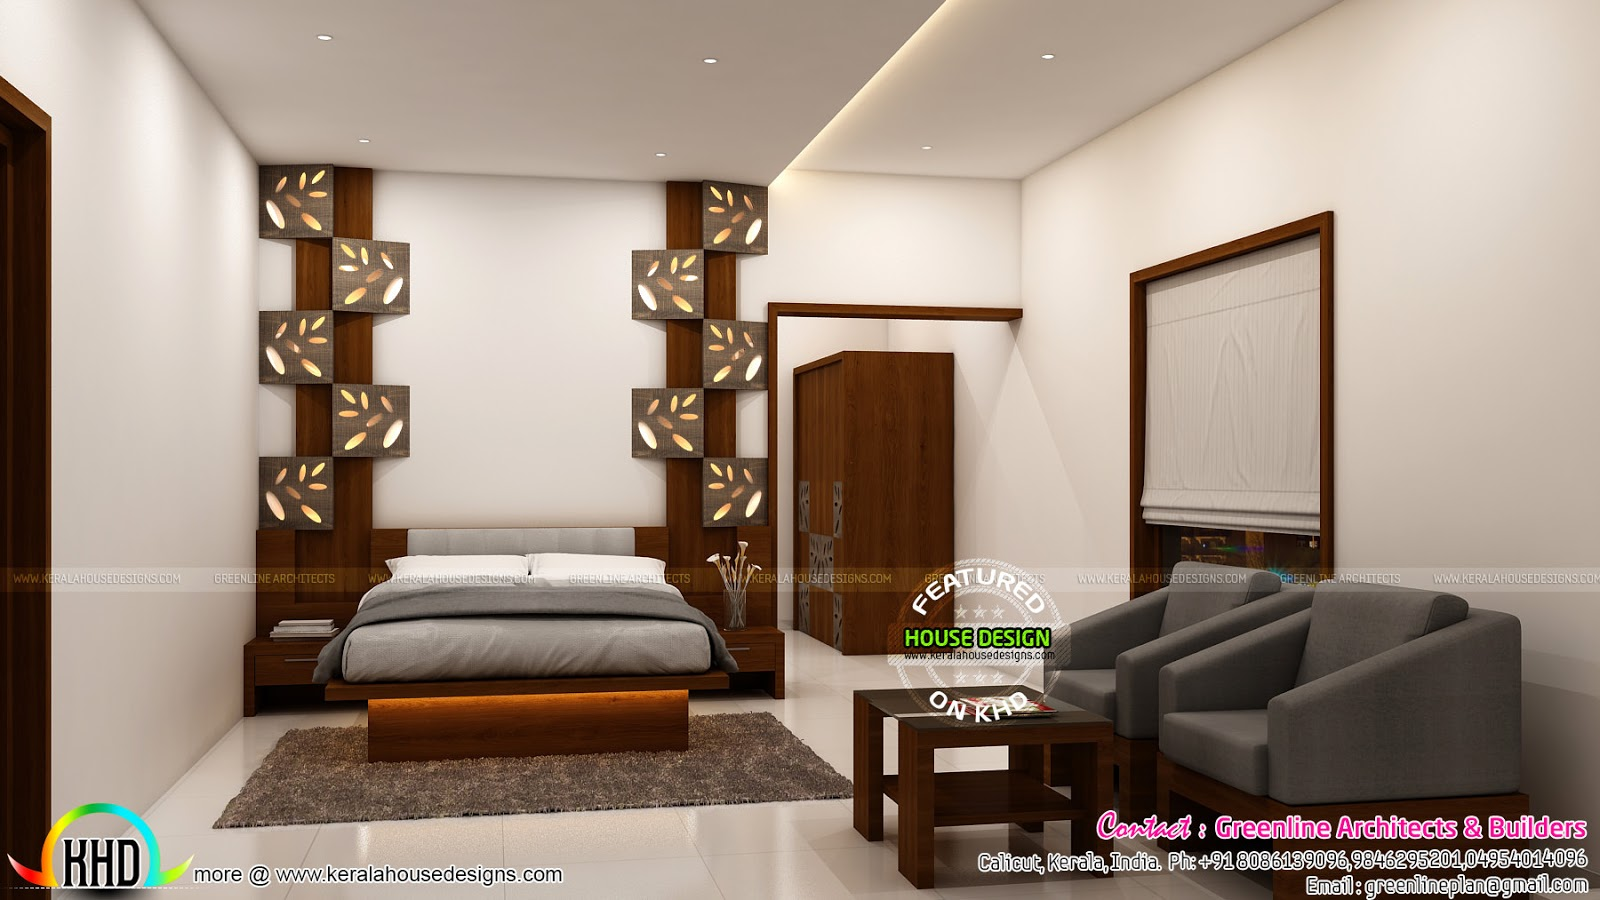 Interior designs of master bedroom kerala home design for Master bedroom interior design ideas